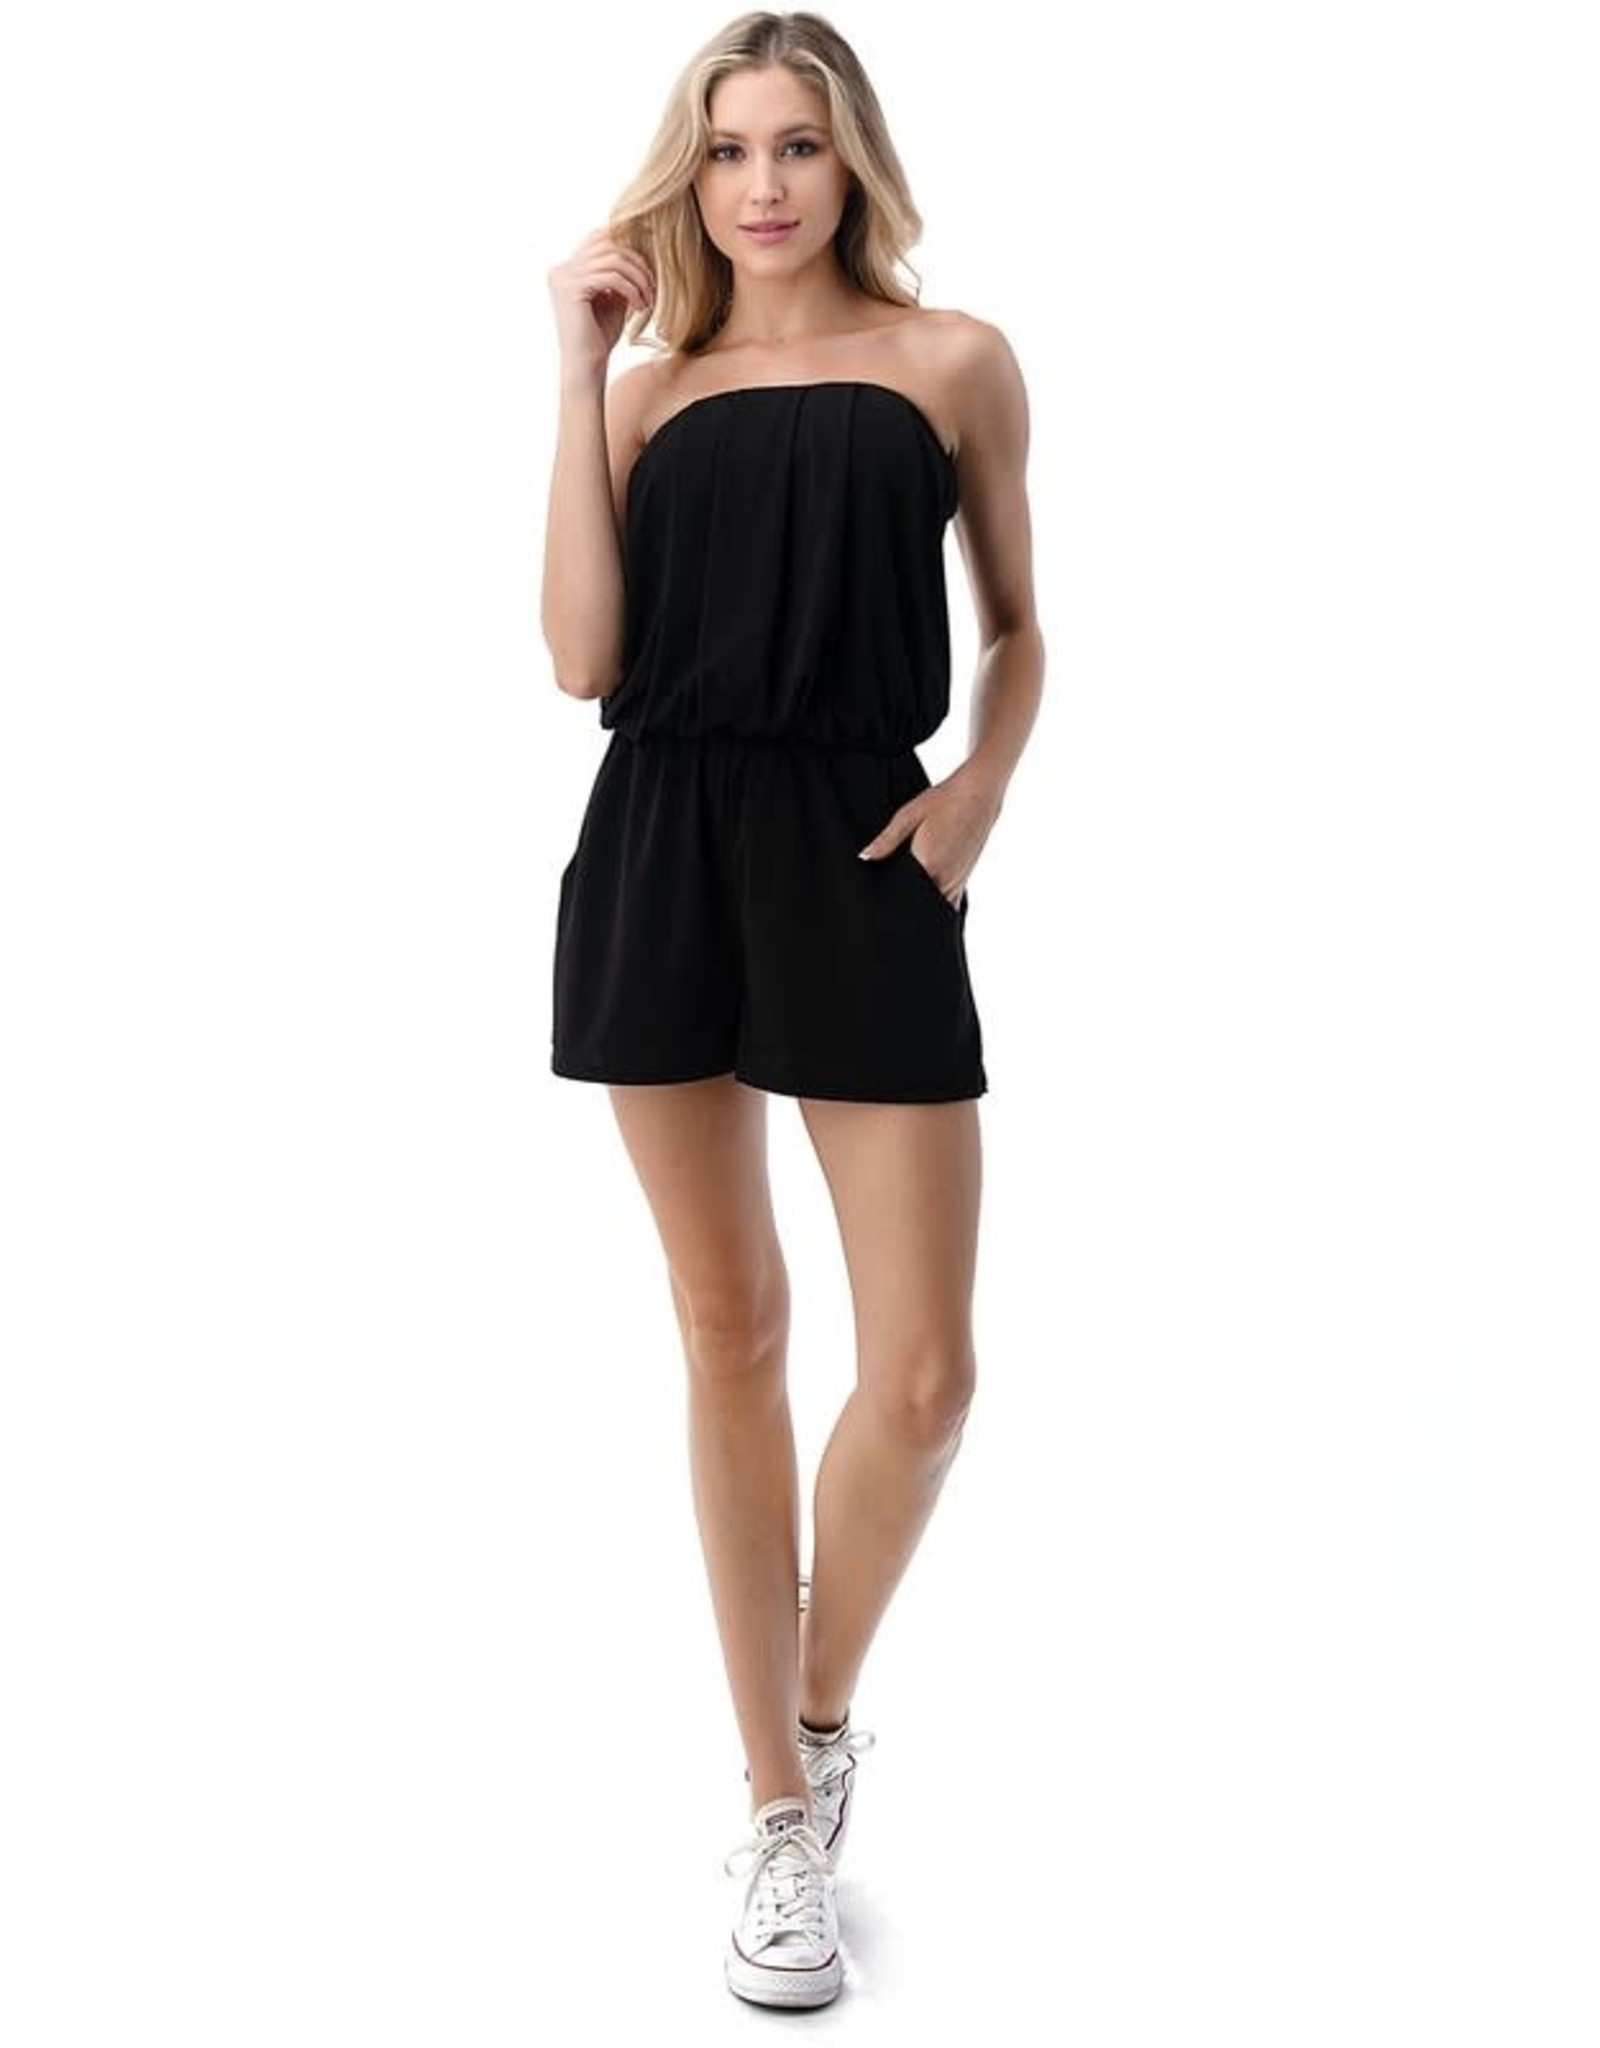 Perfectly Simple Romper